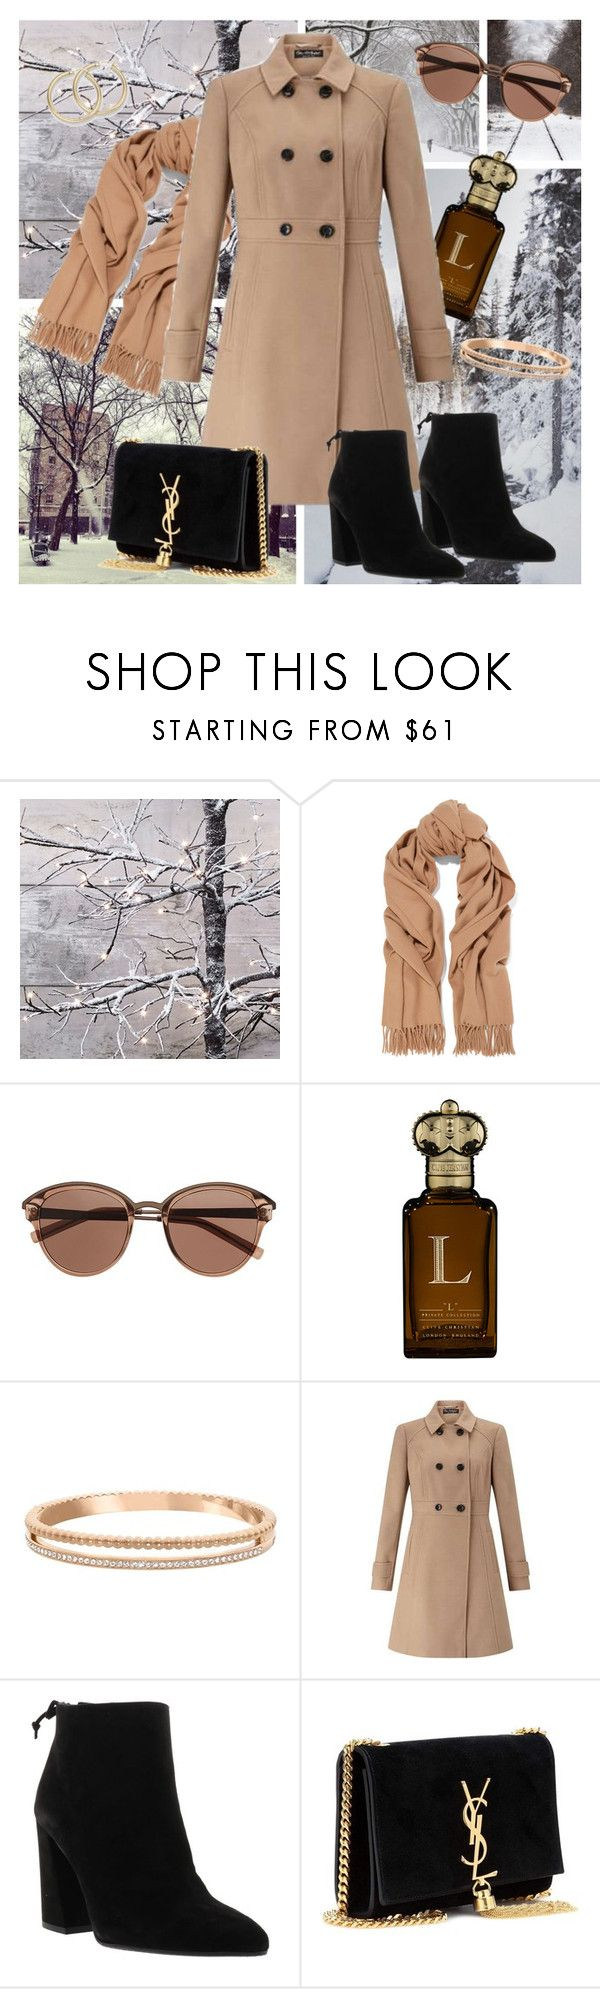 """""""Winter Coat"""" by monique-joanne ❤ liked on Polyvore featuring Acne Studios, Witchery, Clive Christian, Swarovski, Miss Selfridge, Stuart Weitzman and Yves Saint Laurent"""